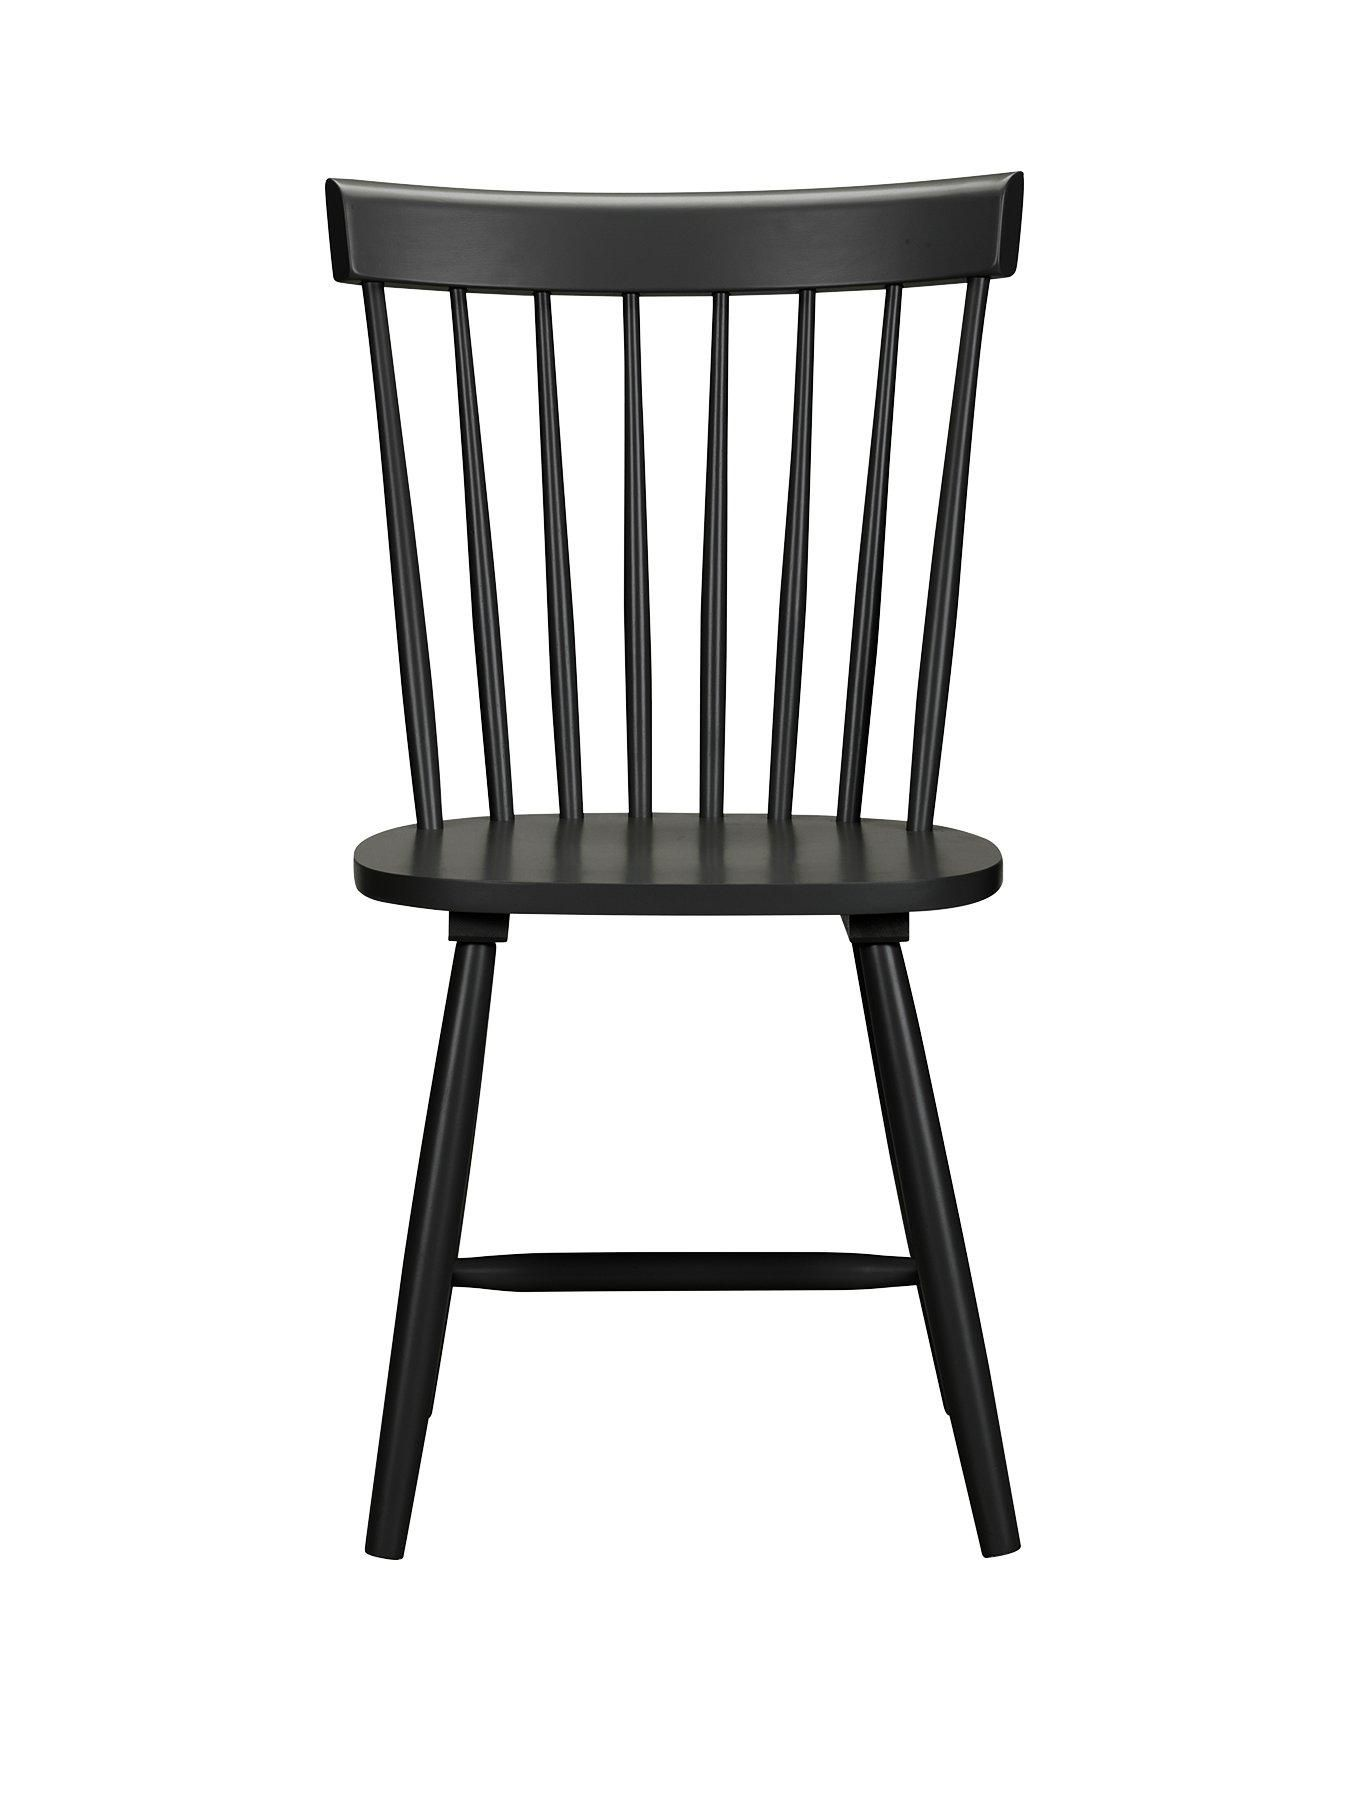 Pair Of Torino Dining Chairs Black Dining Chairs Chair